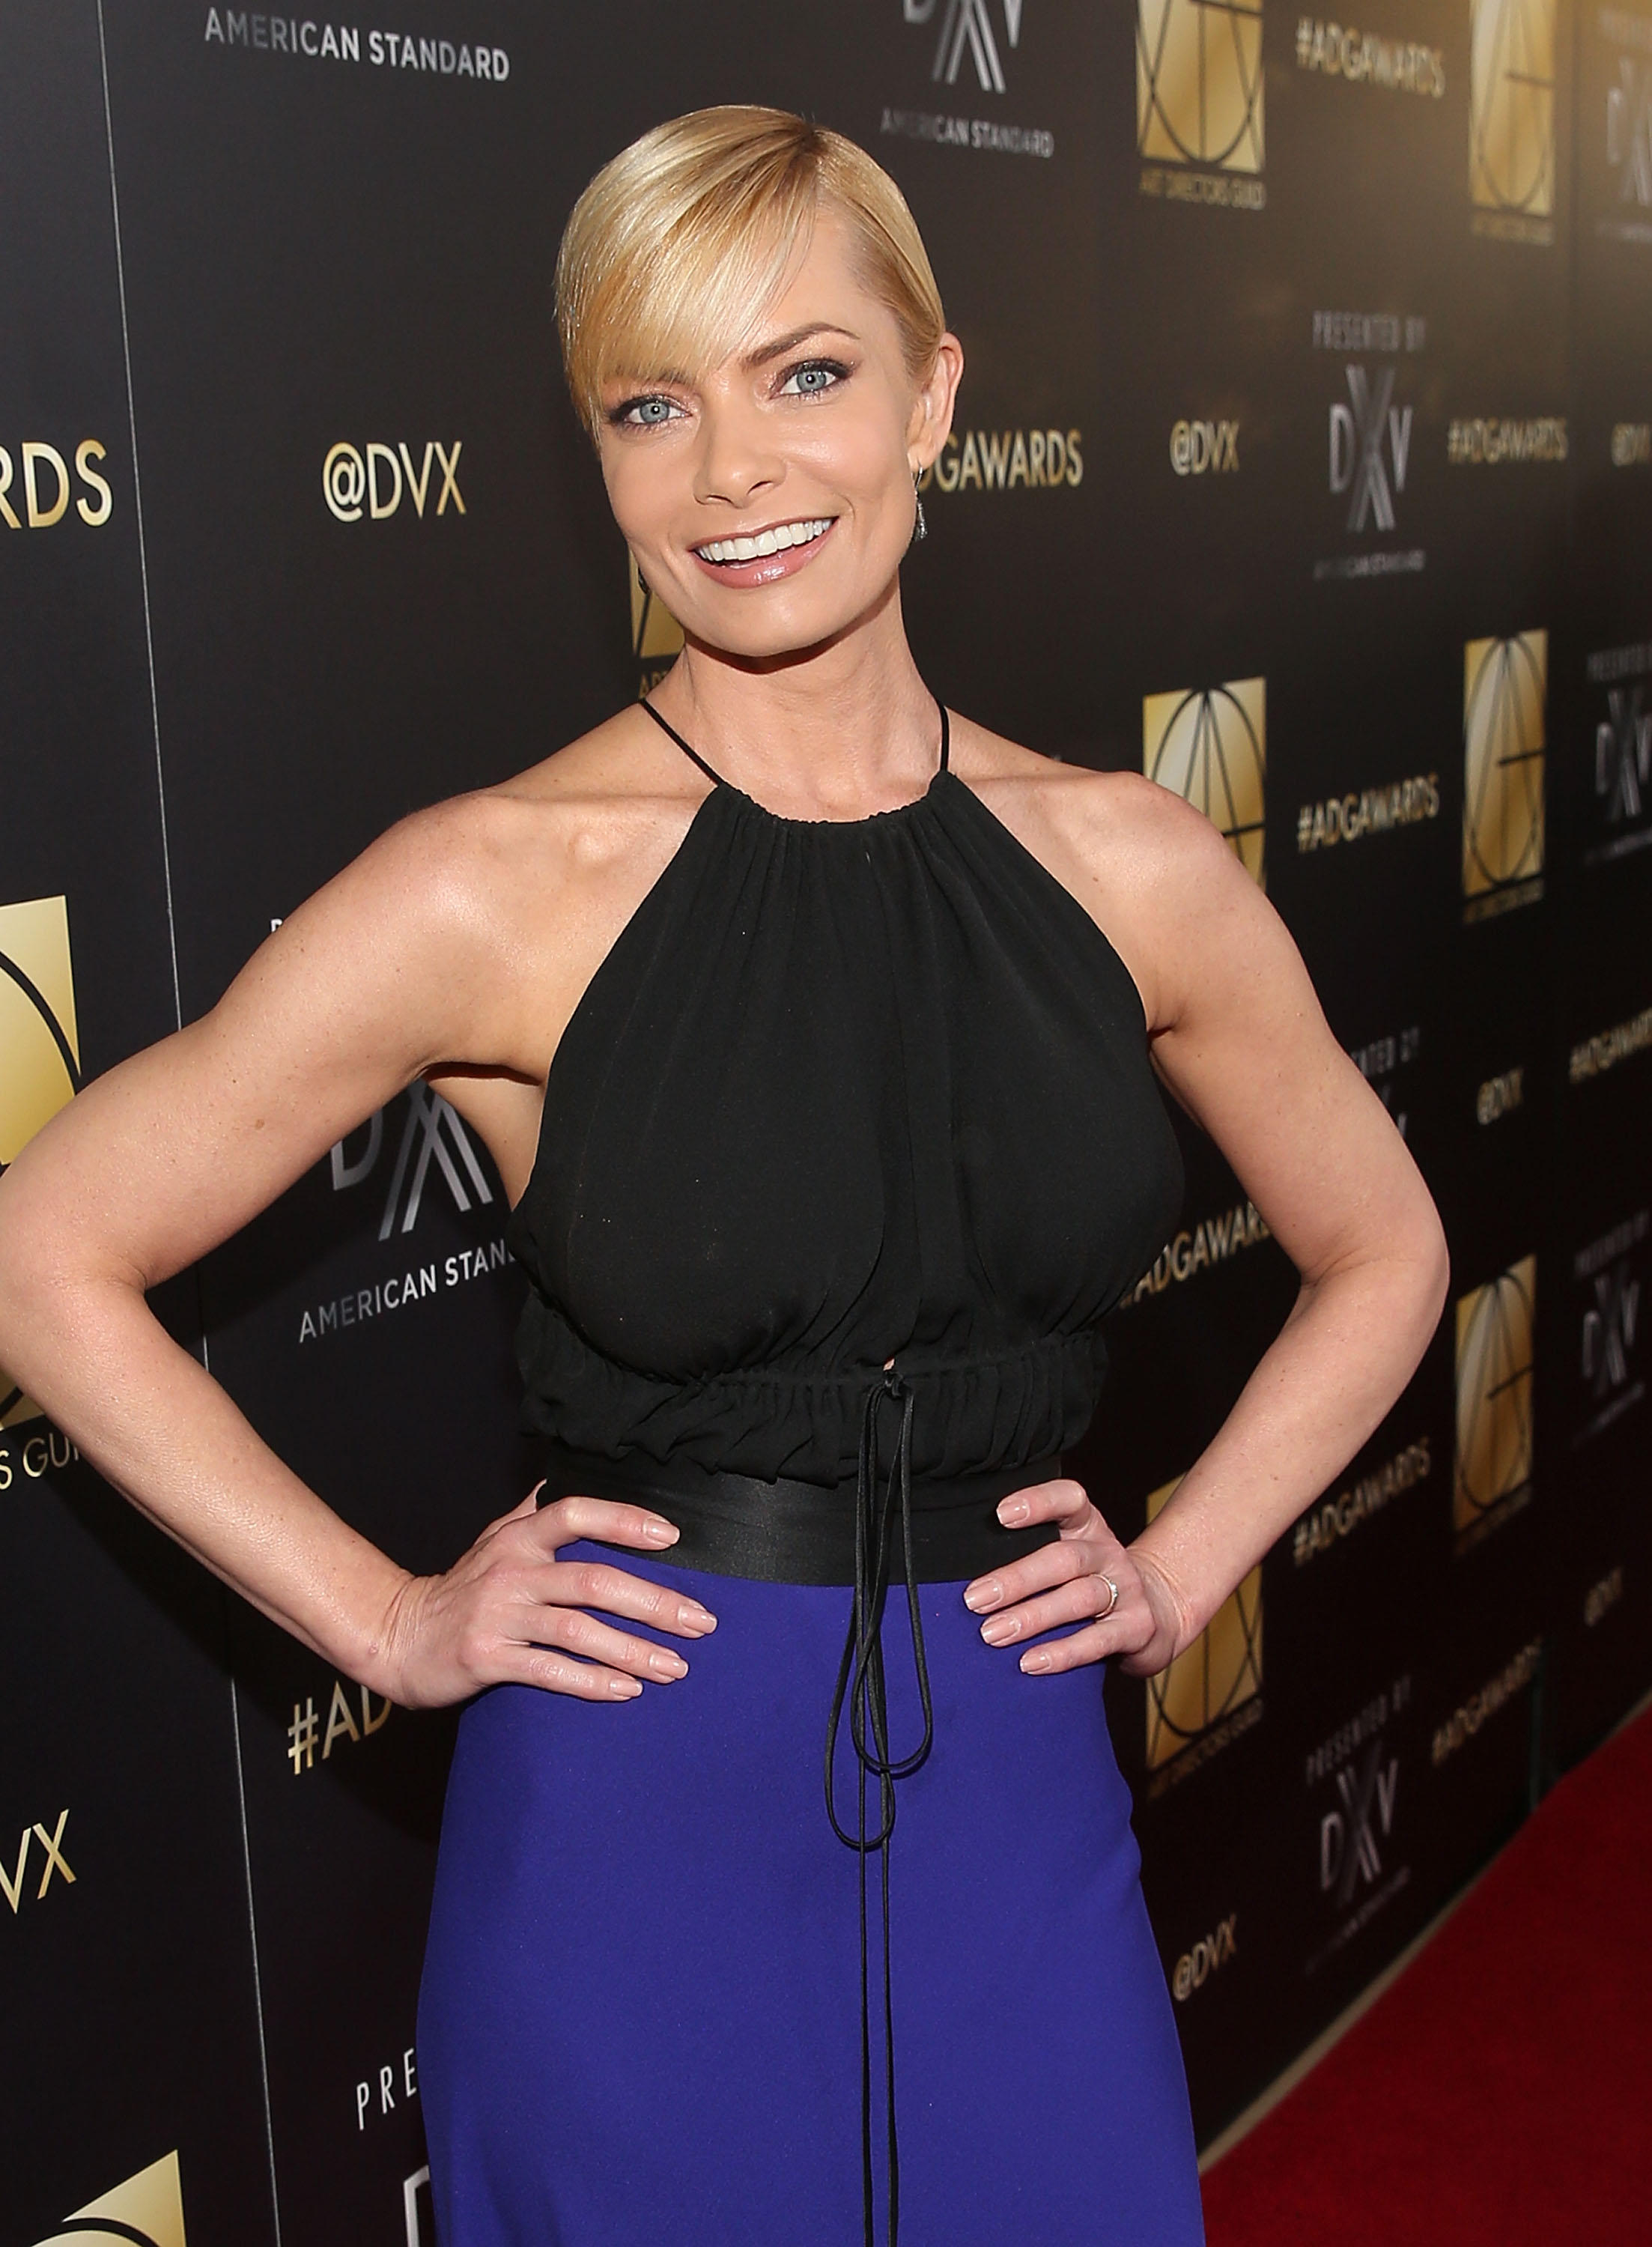 Pictures Jaime Pressly naked (93 foto and video), Sexy, Hot, Boobs, in bikini 2018